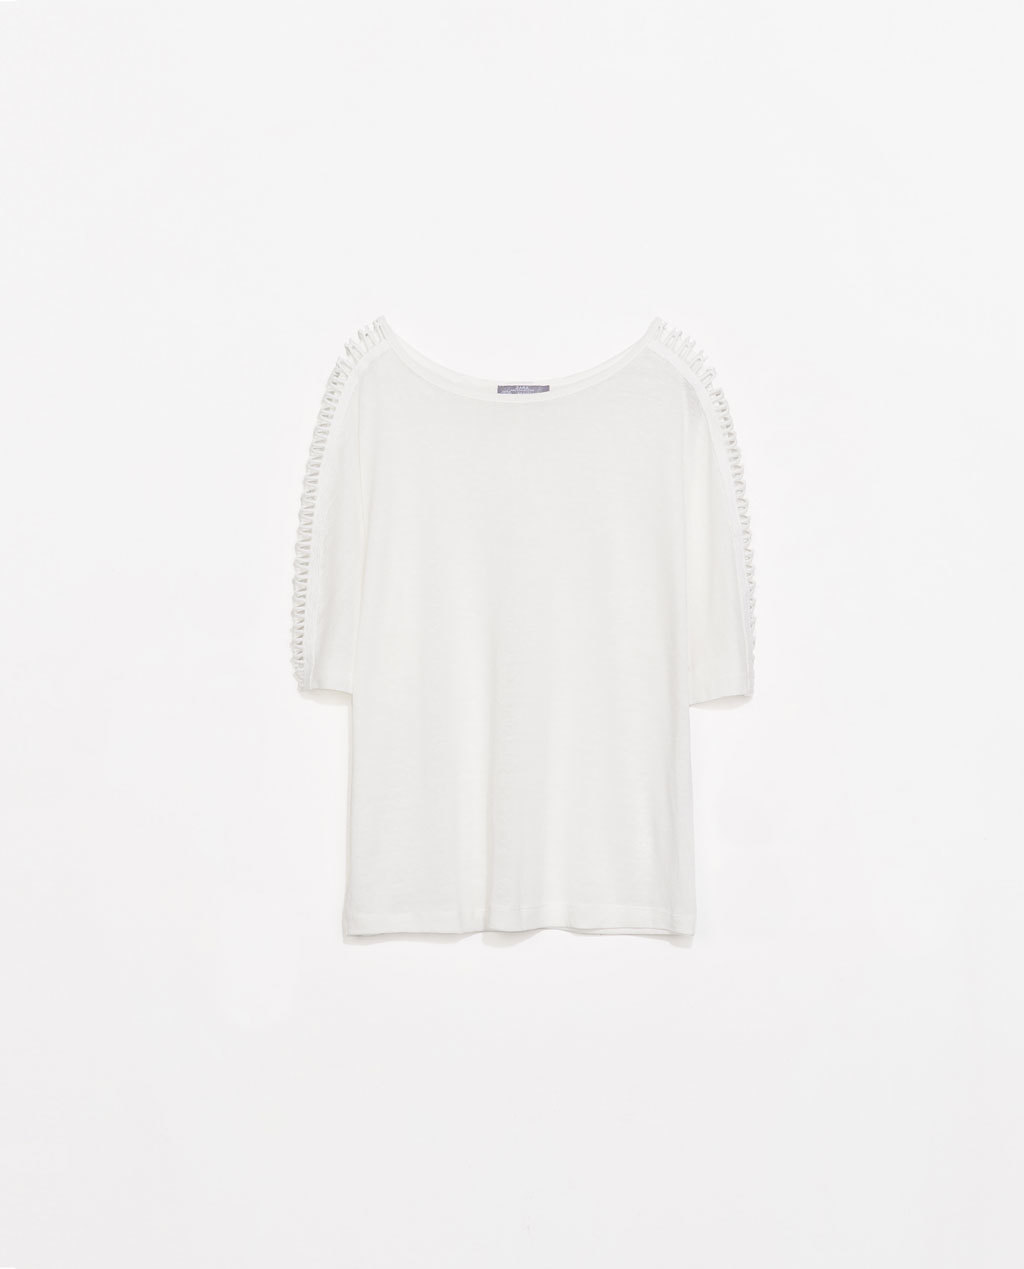 T Shirt With Lace On Shoulder - neckline: round neck; pattern: plain; style: t-shirt; predominant colour: ivory/cream; occasions: casual, holiday, creative work; length: standard; fibres: linen - mix; fit: loose; shoulder detail: cut out shoulder; sleeve length: short sleeve; sleeve style: standard; texture group: linen; pattern type: fabric; season: s/s 2014